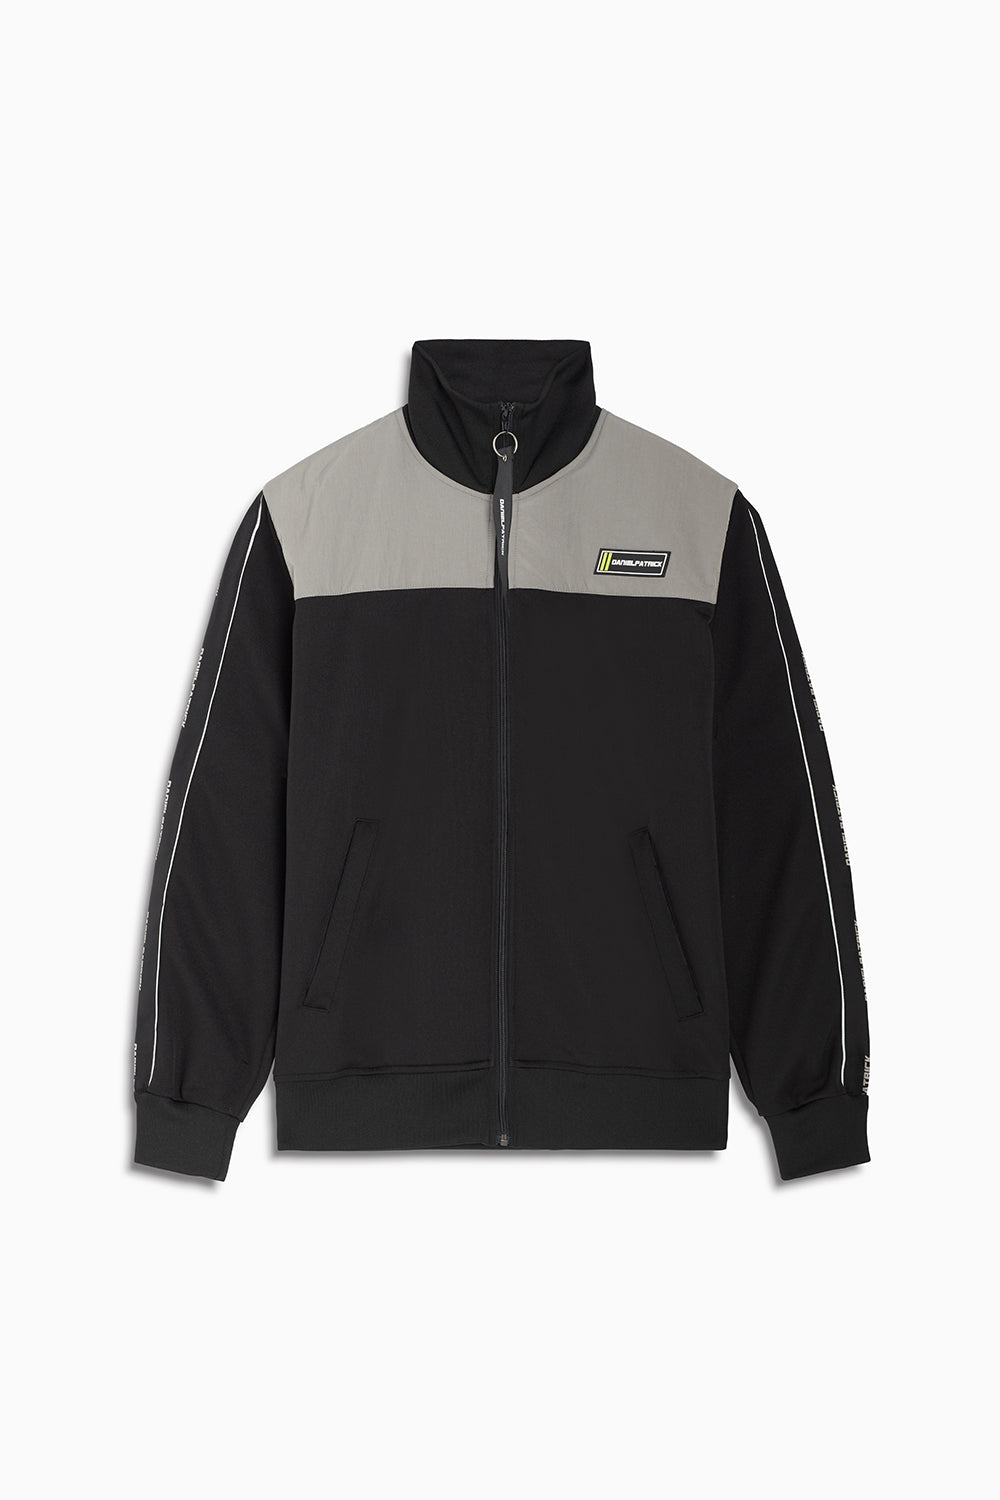 2020 slim track jacket / black + 3m + smog grey